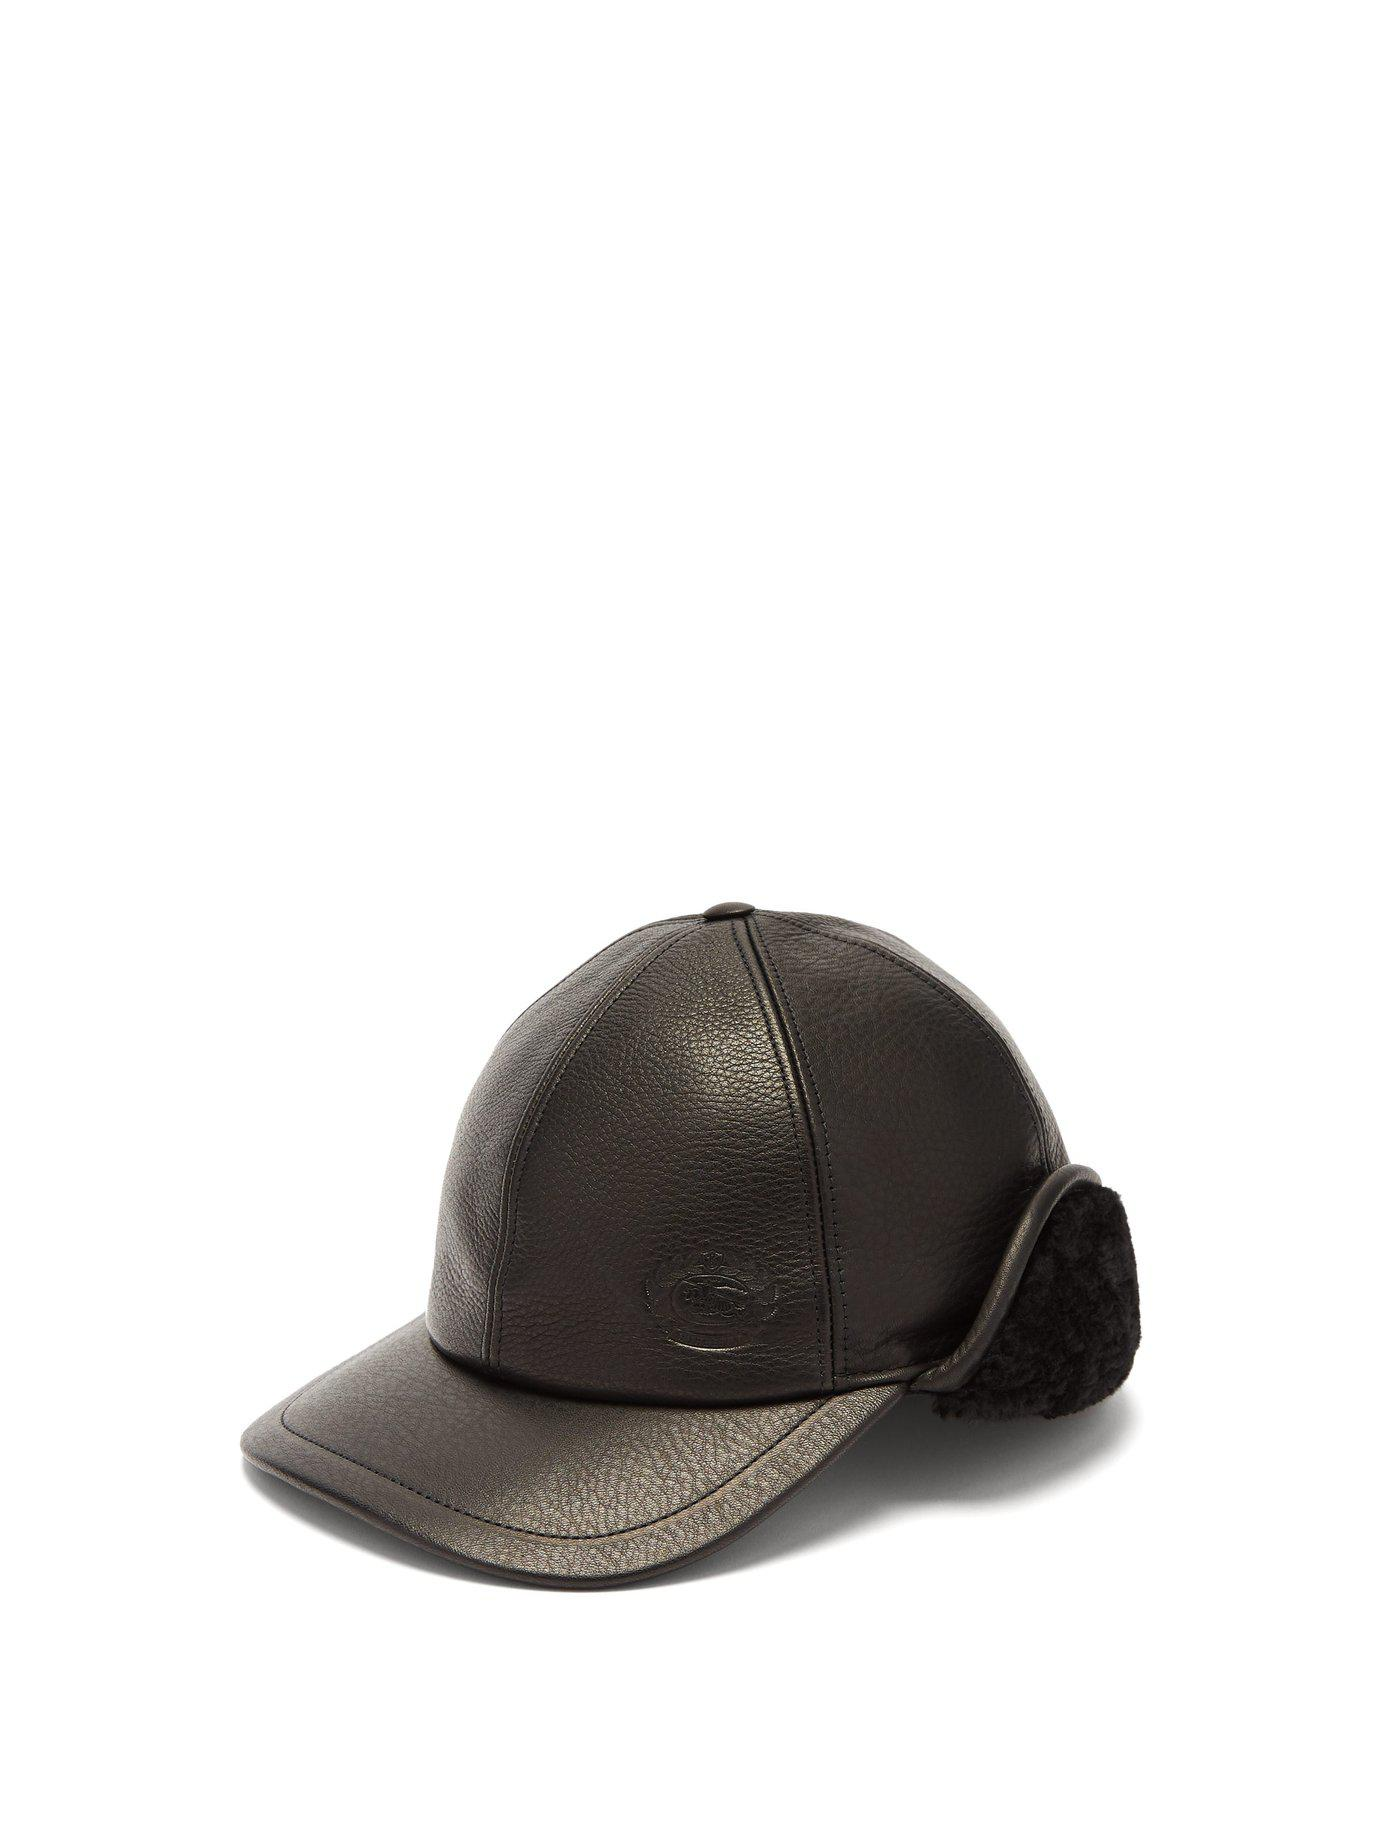 Lyst - Burberry Explorer Leather Cap in Black fd548f92fa0